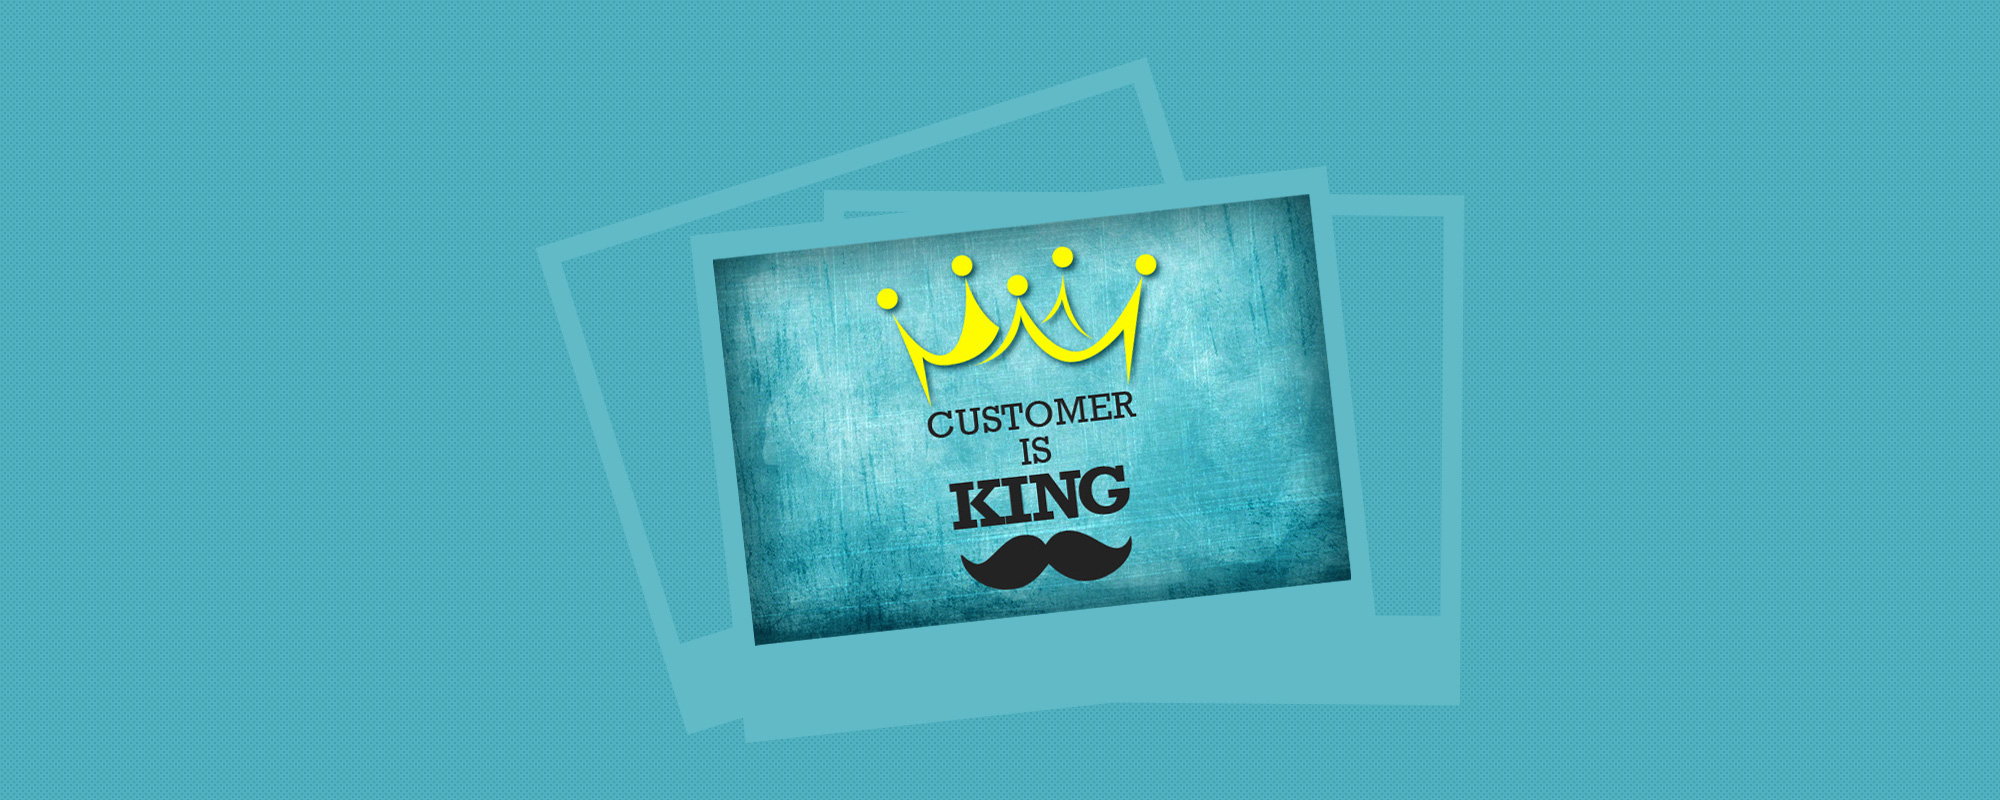 Is Customer Really The King? Perspectives of Different Organizational Departments